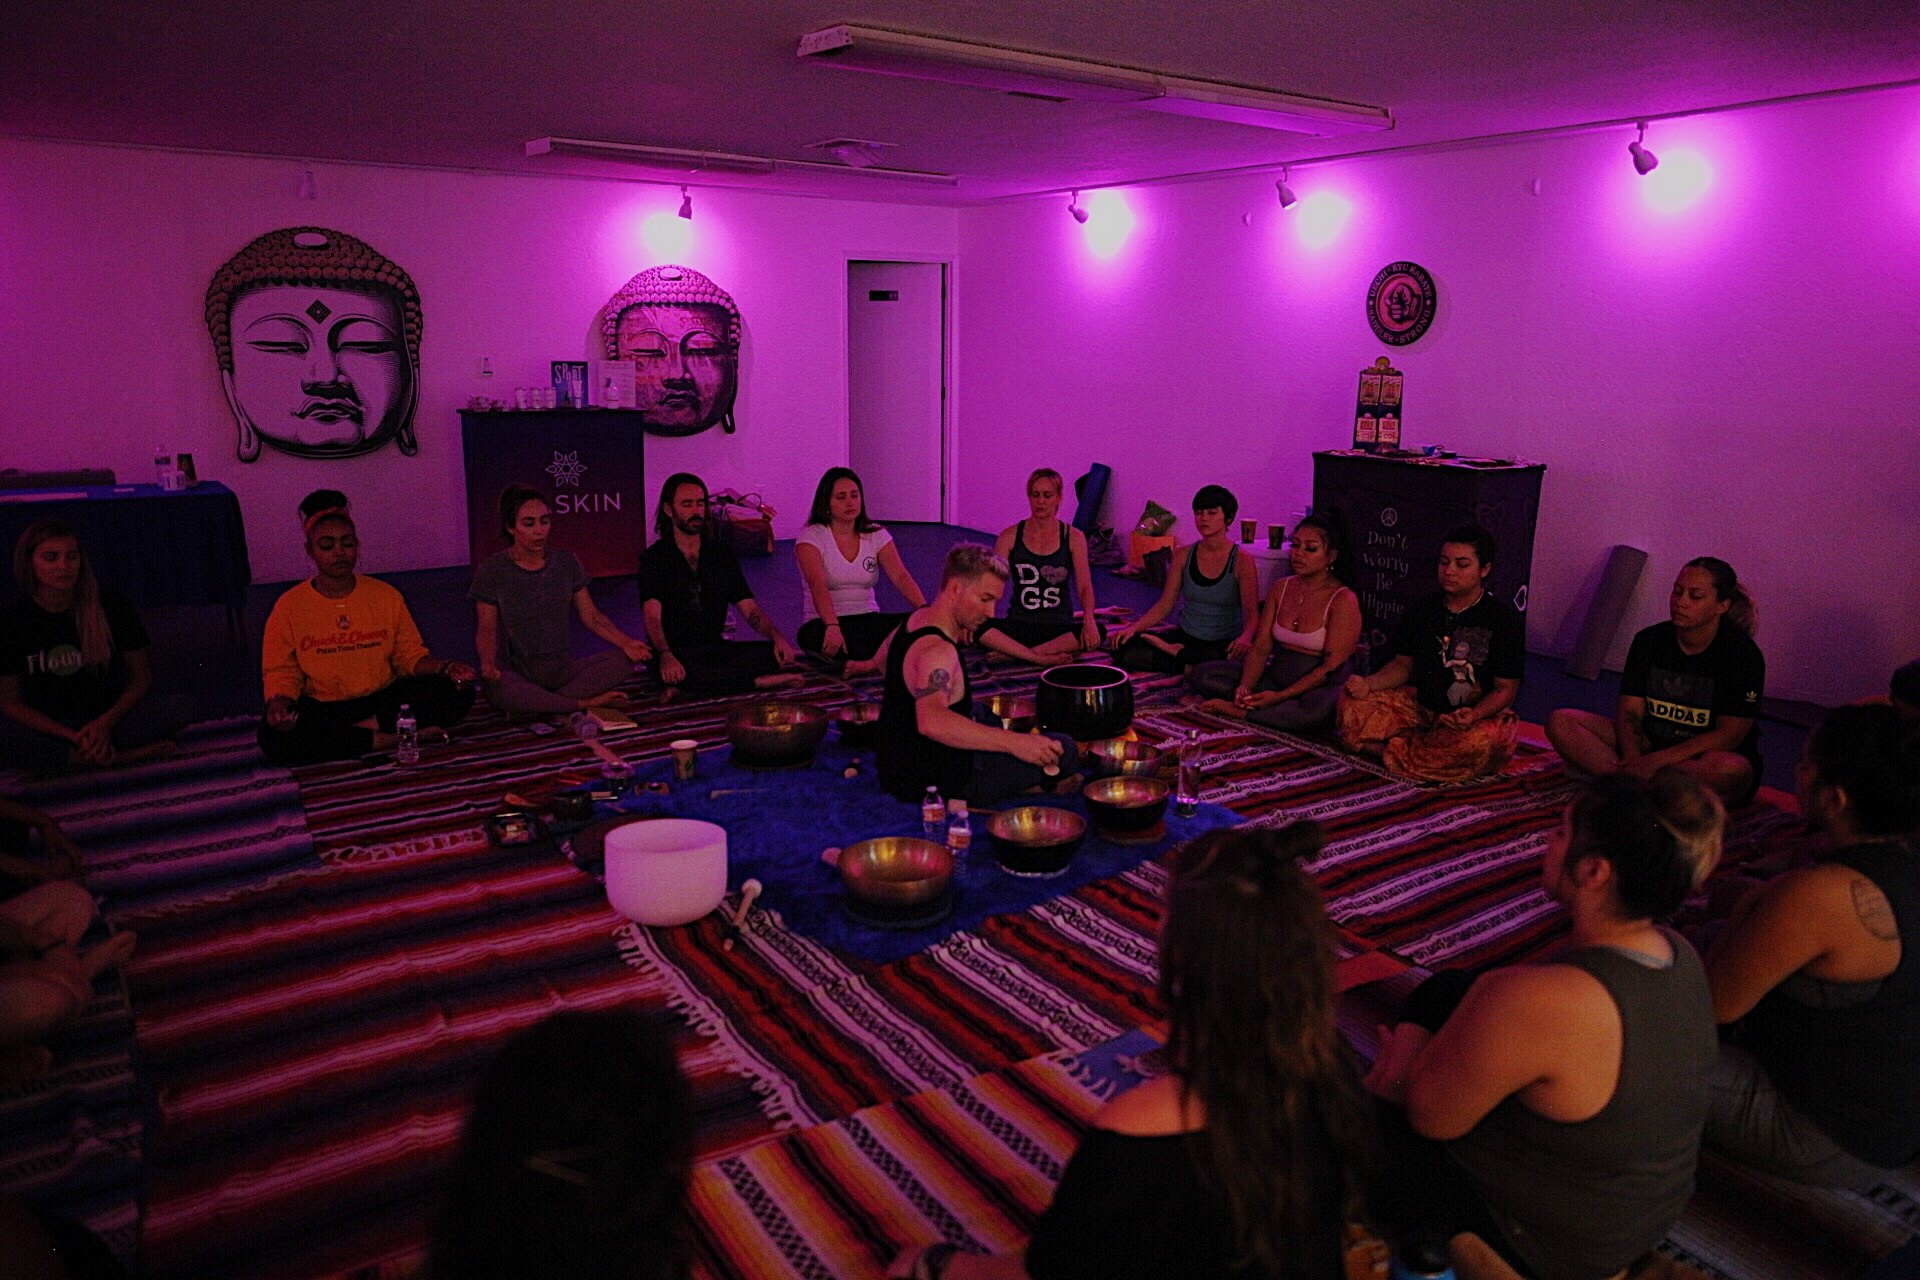 Cannabis Health Club: Phoenix Group Helps Women of Color Cope With Life